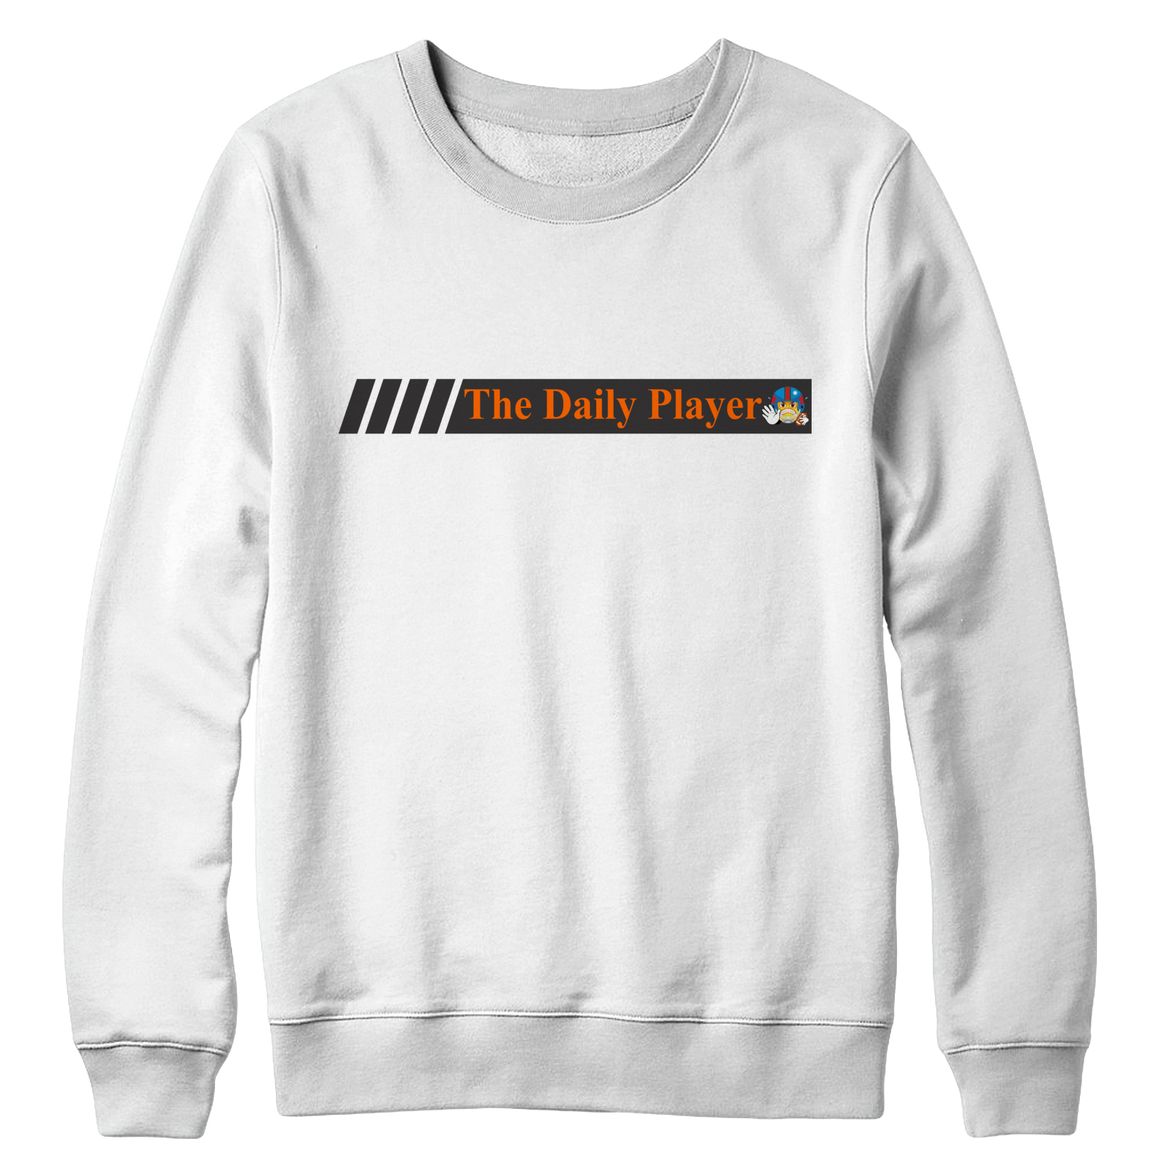 The Daily Player - Sweatshirt